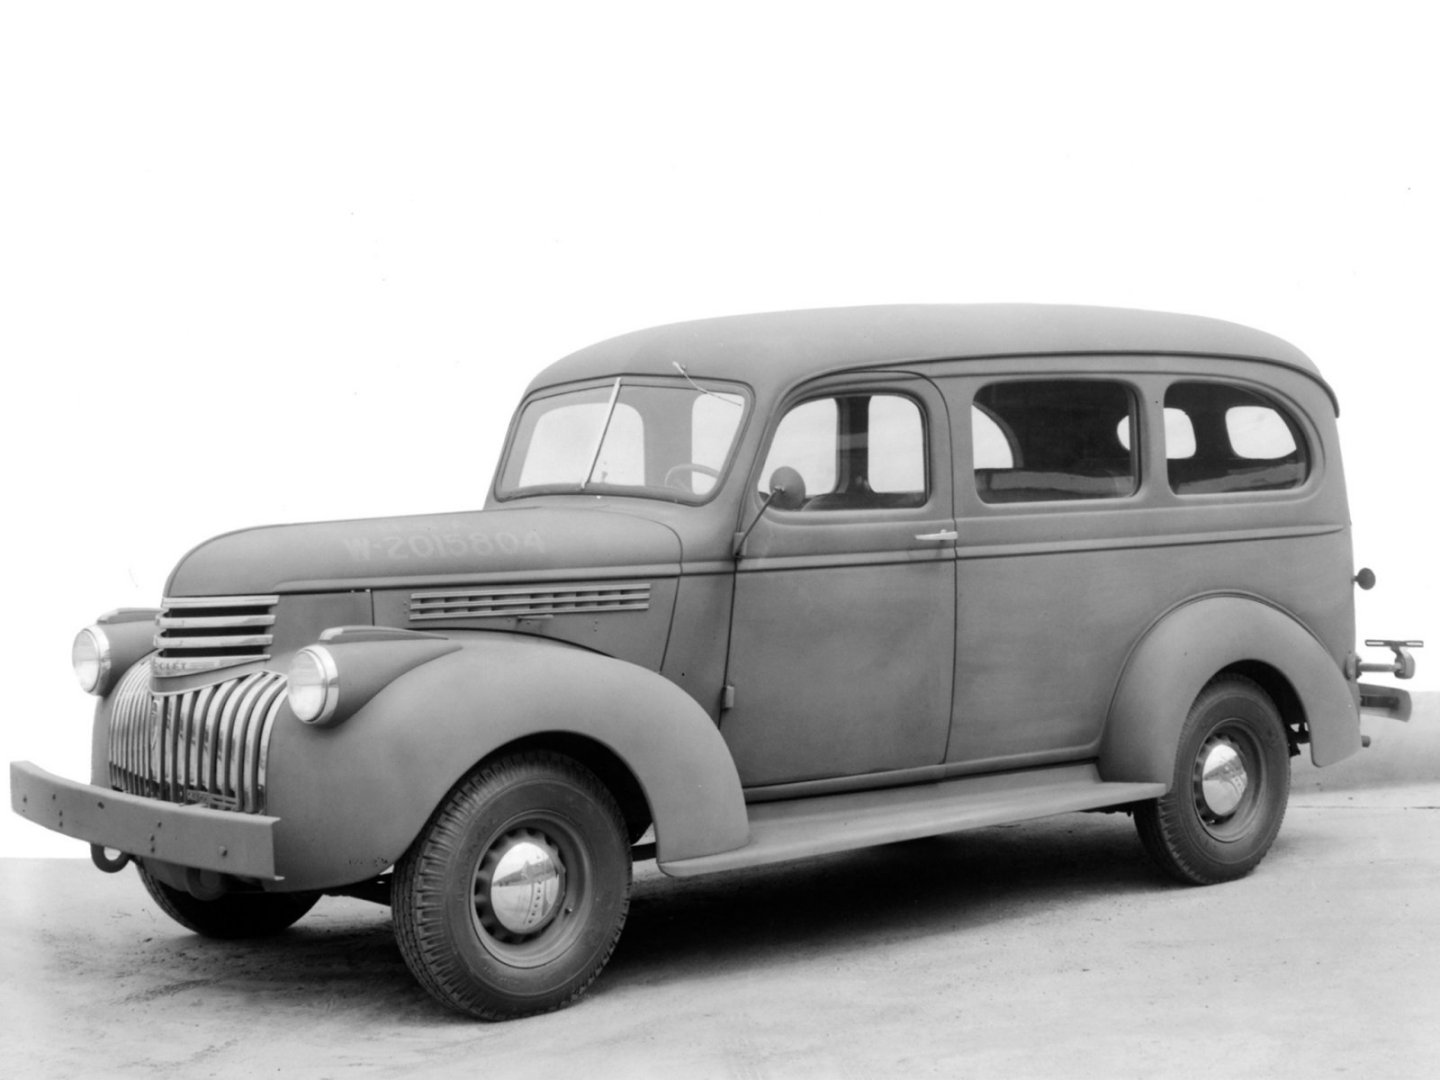 1947 55 Suburban For Sale.html | Autos Weblog